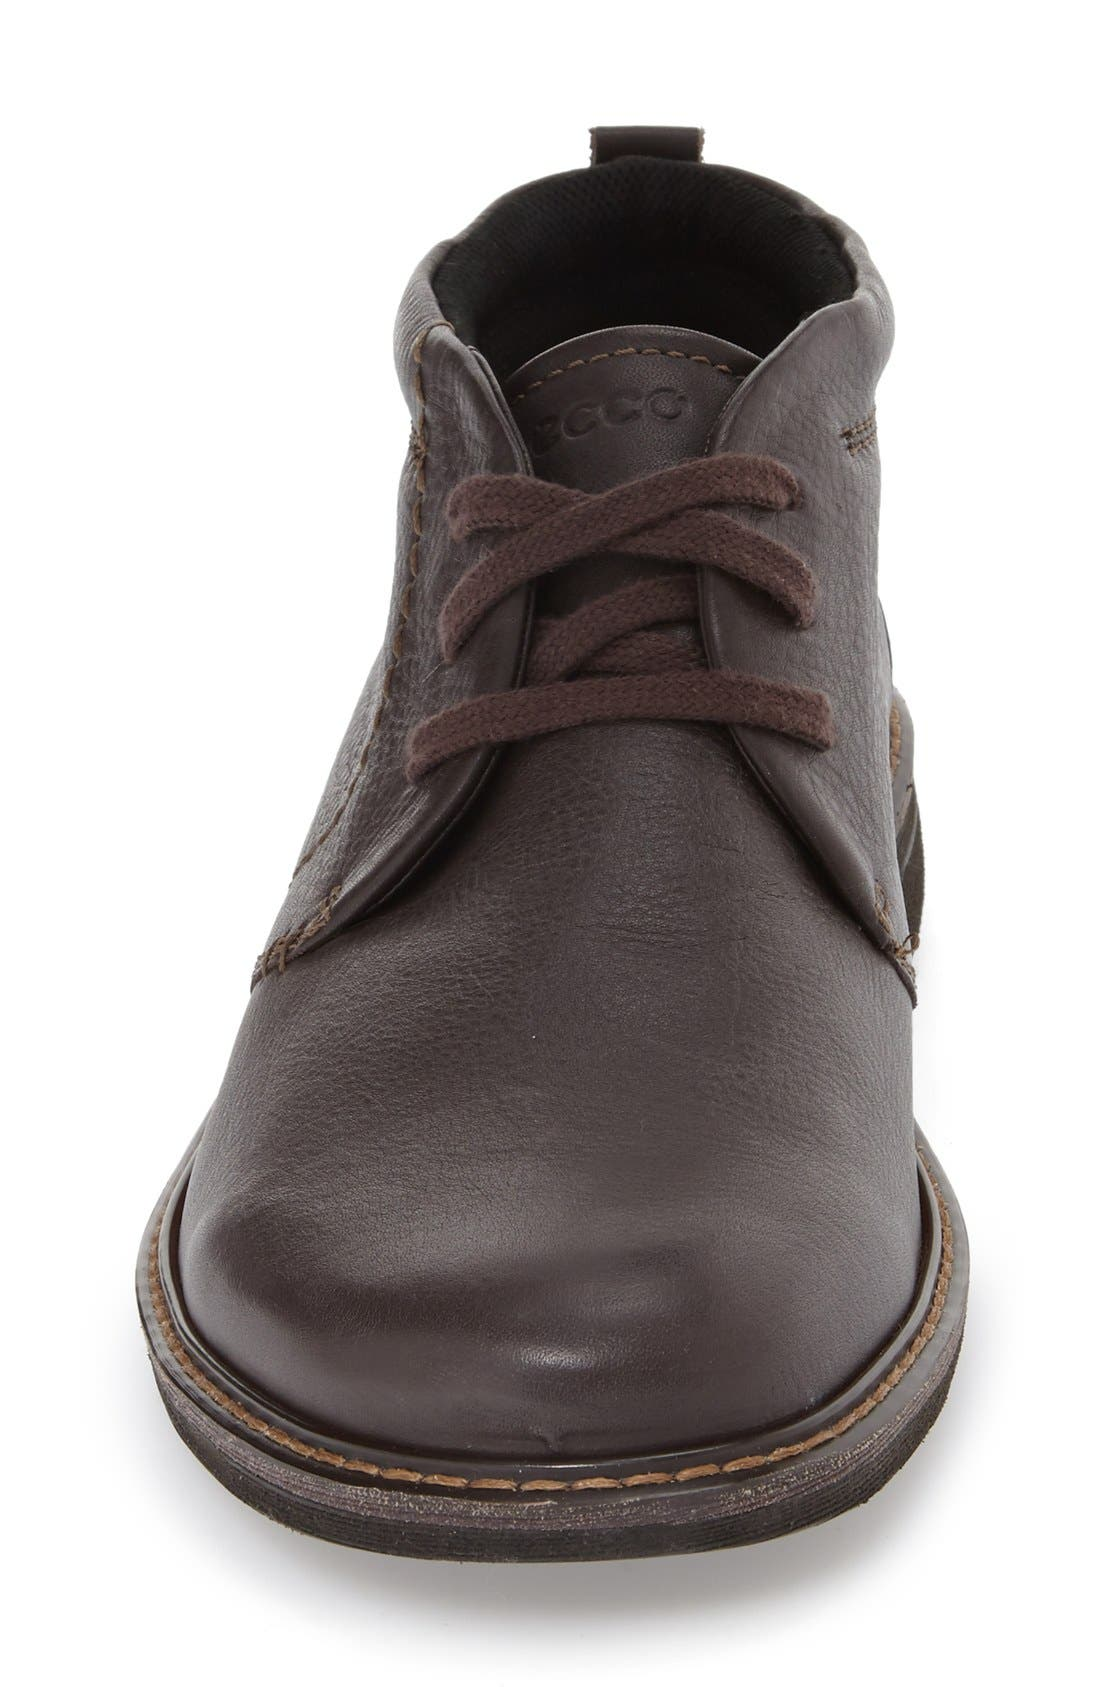 'Turn' Chukka Boot,                             Alternate thumbnail 6, color,                             COFFEE LEATHER